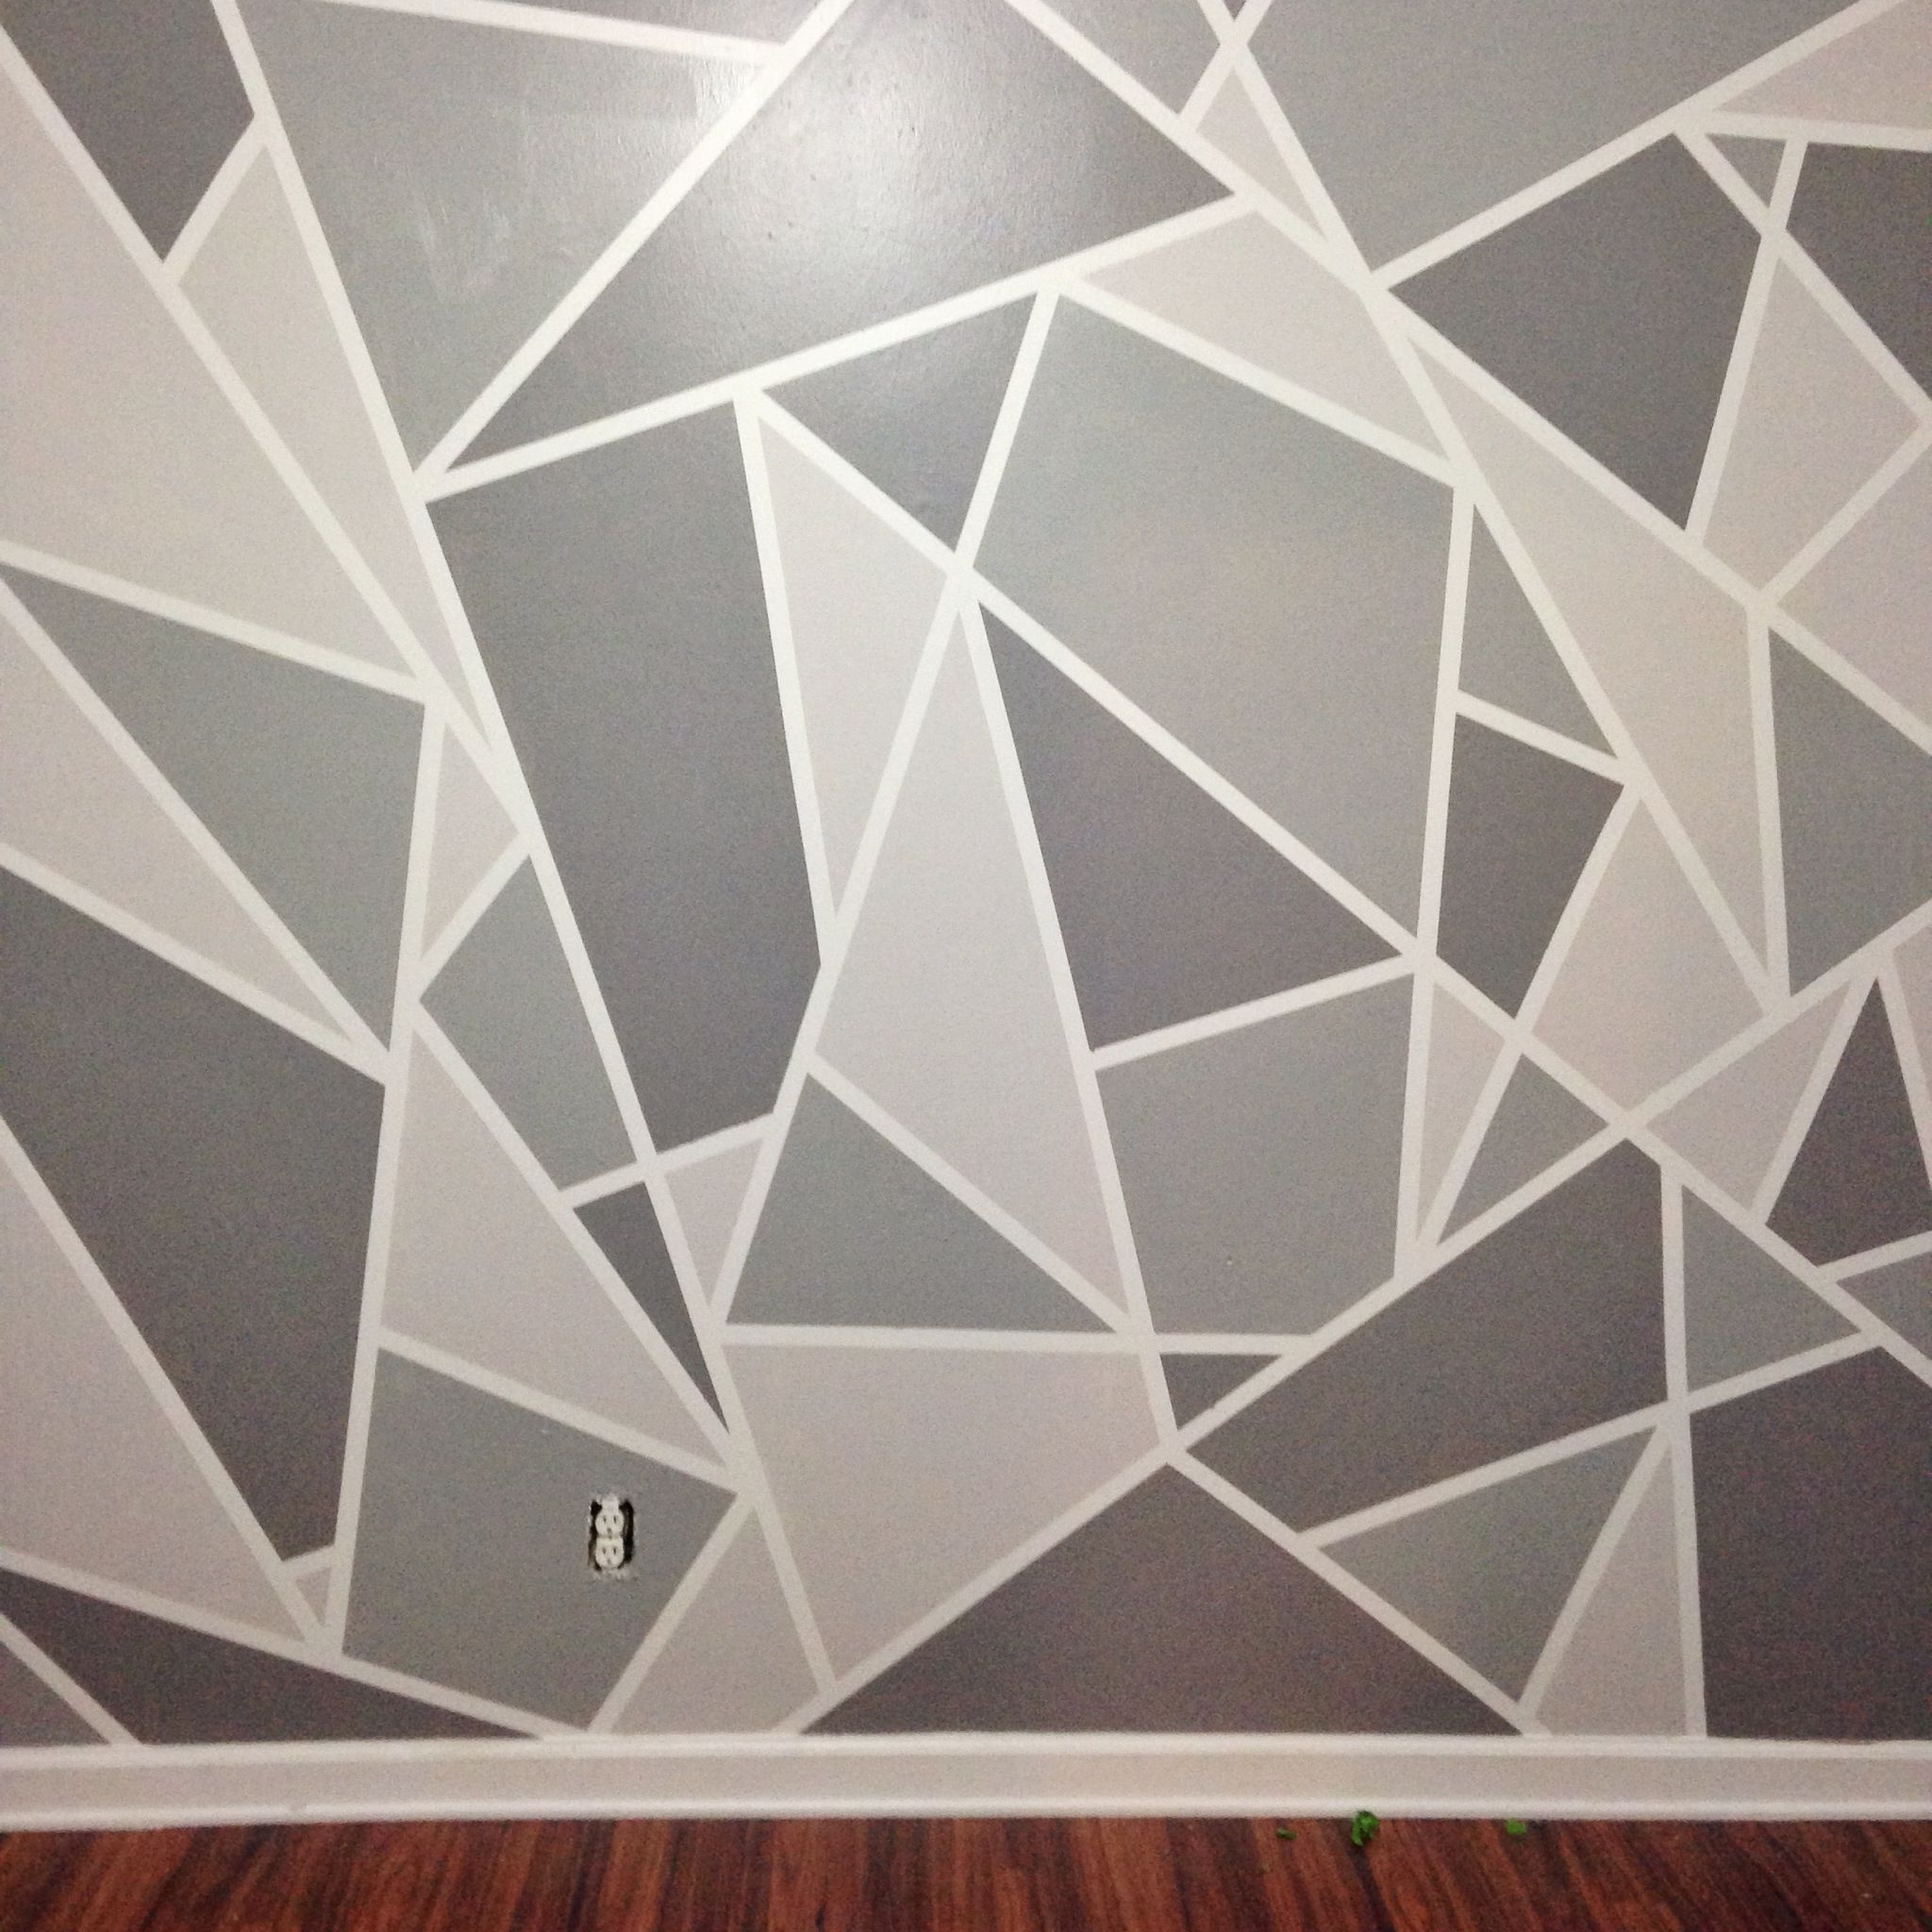 Gray Intended For 3d Triangle Wall Art (View 12 of 15)